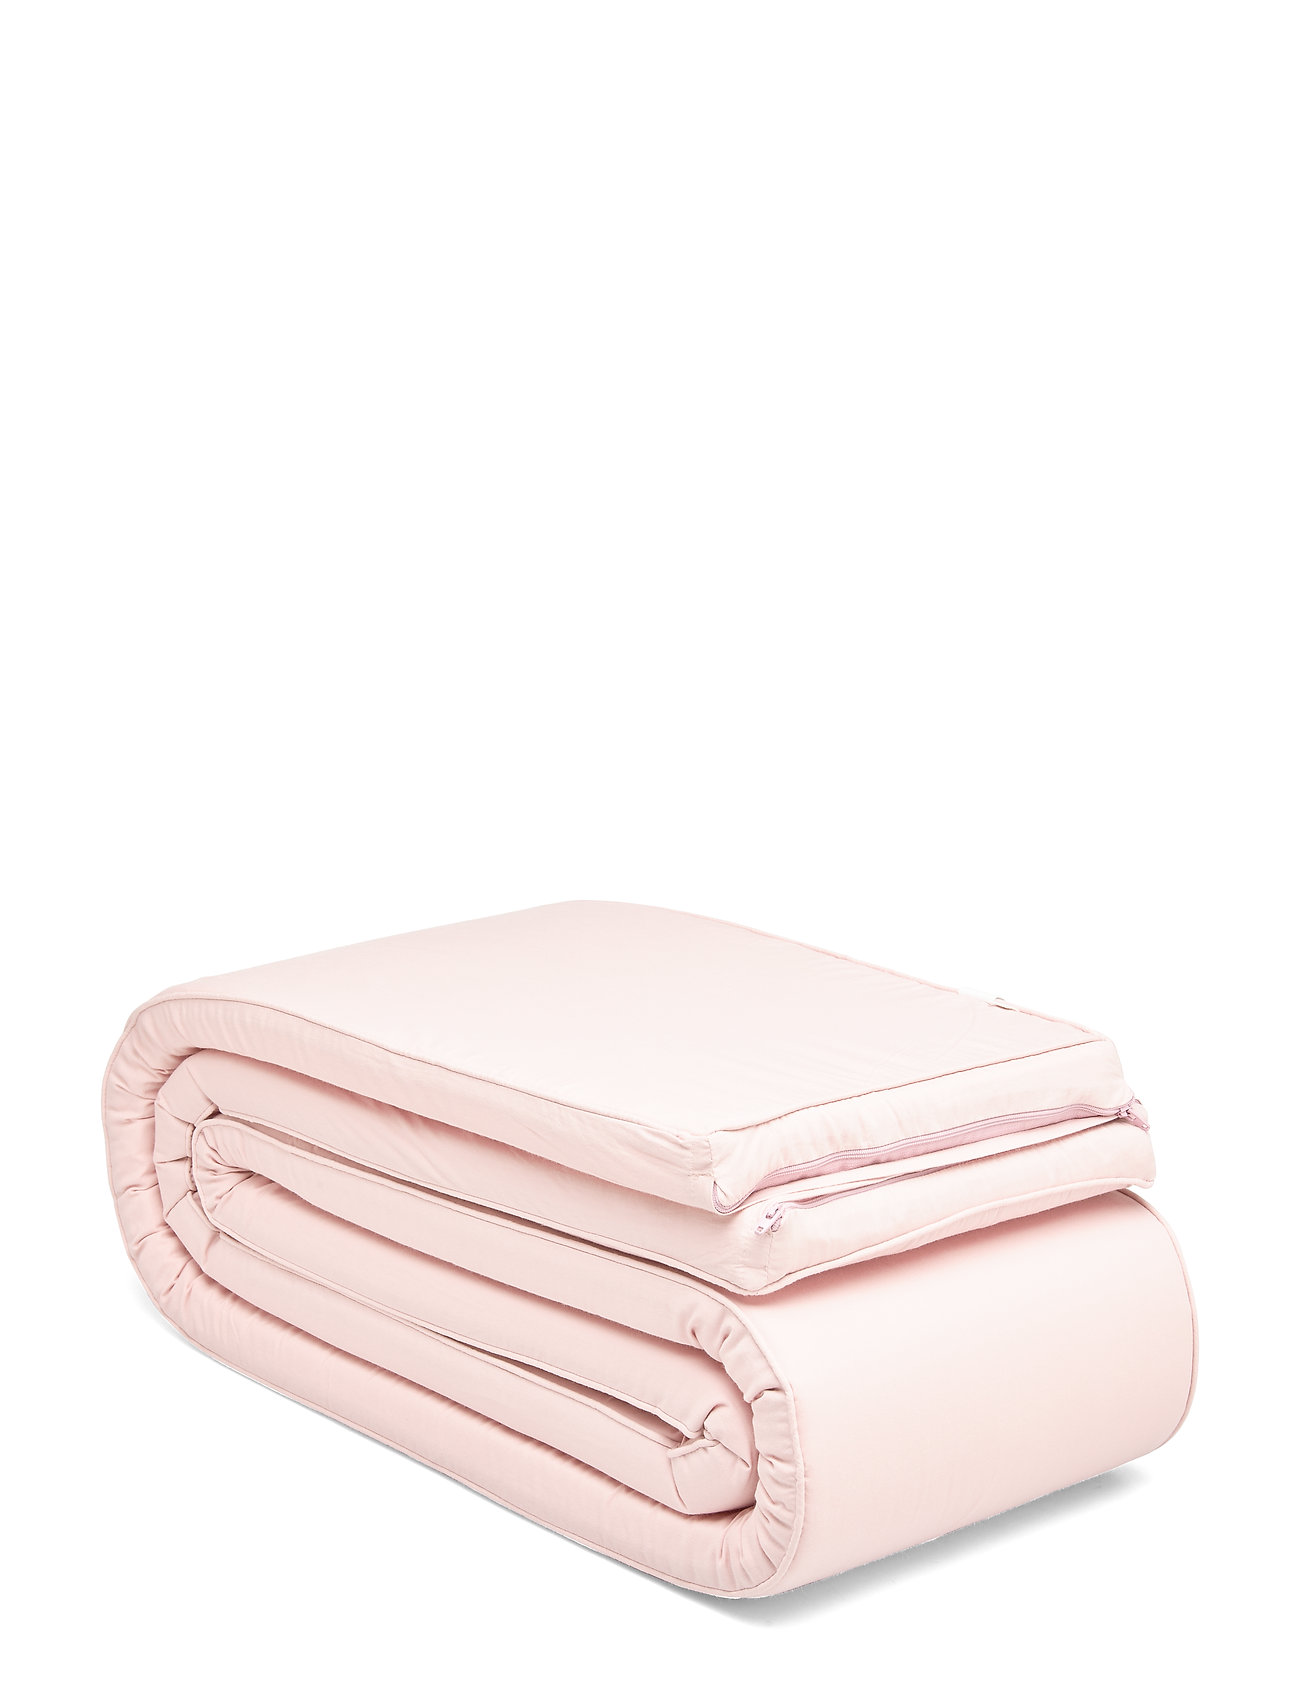 Müsli by Green Cotton Solid bumper - ROSE